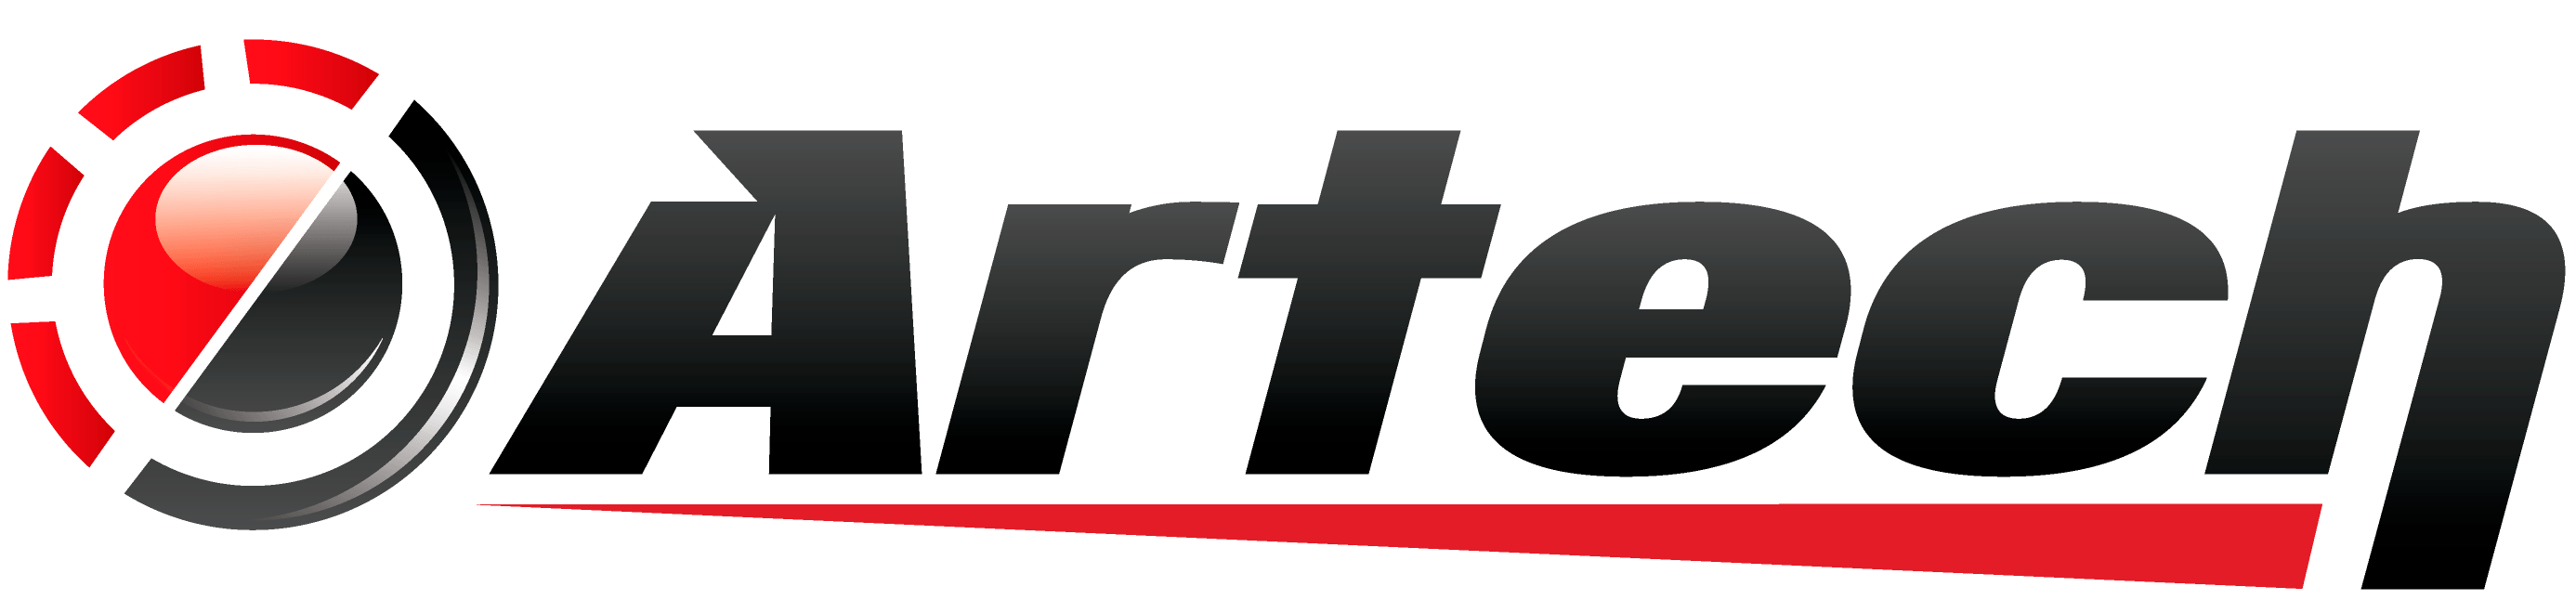 Artech Security – YVR Security Systems Company